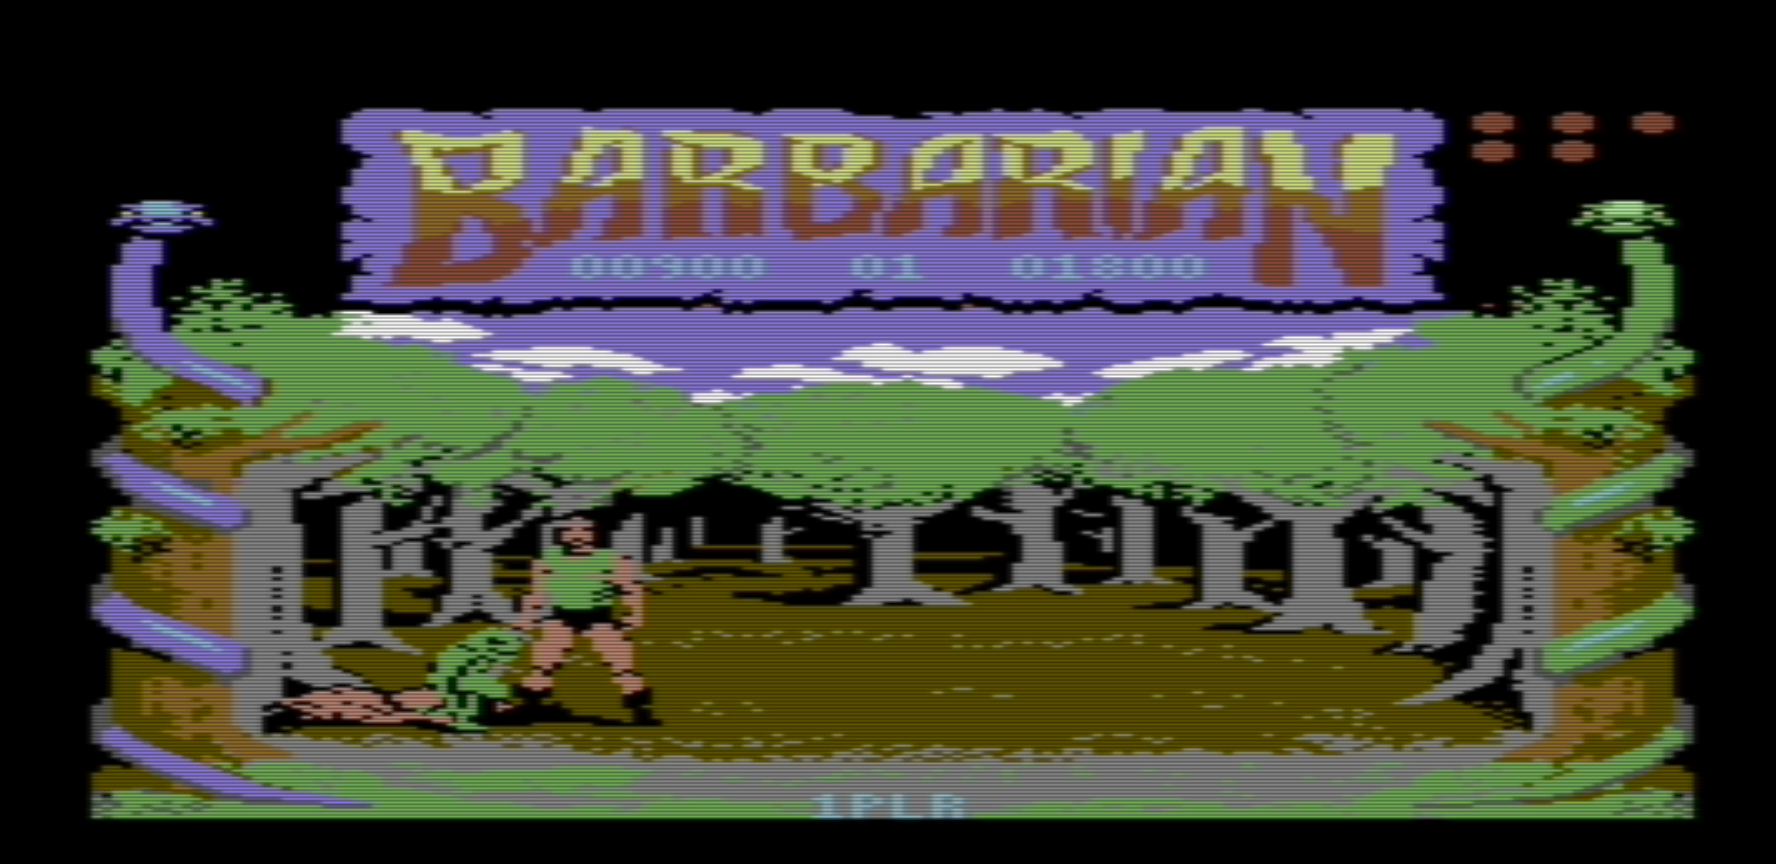 Barbarian: The Ultimate Warrior 900 points